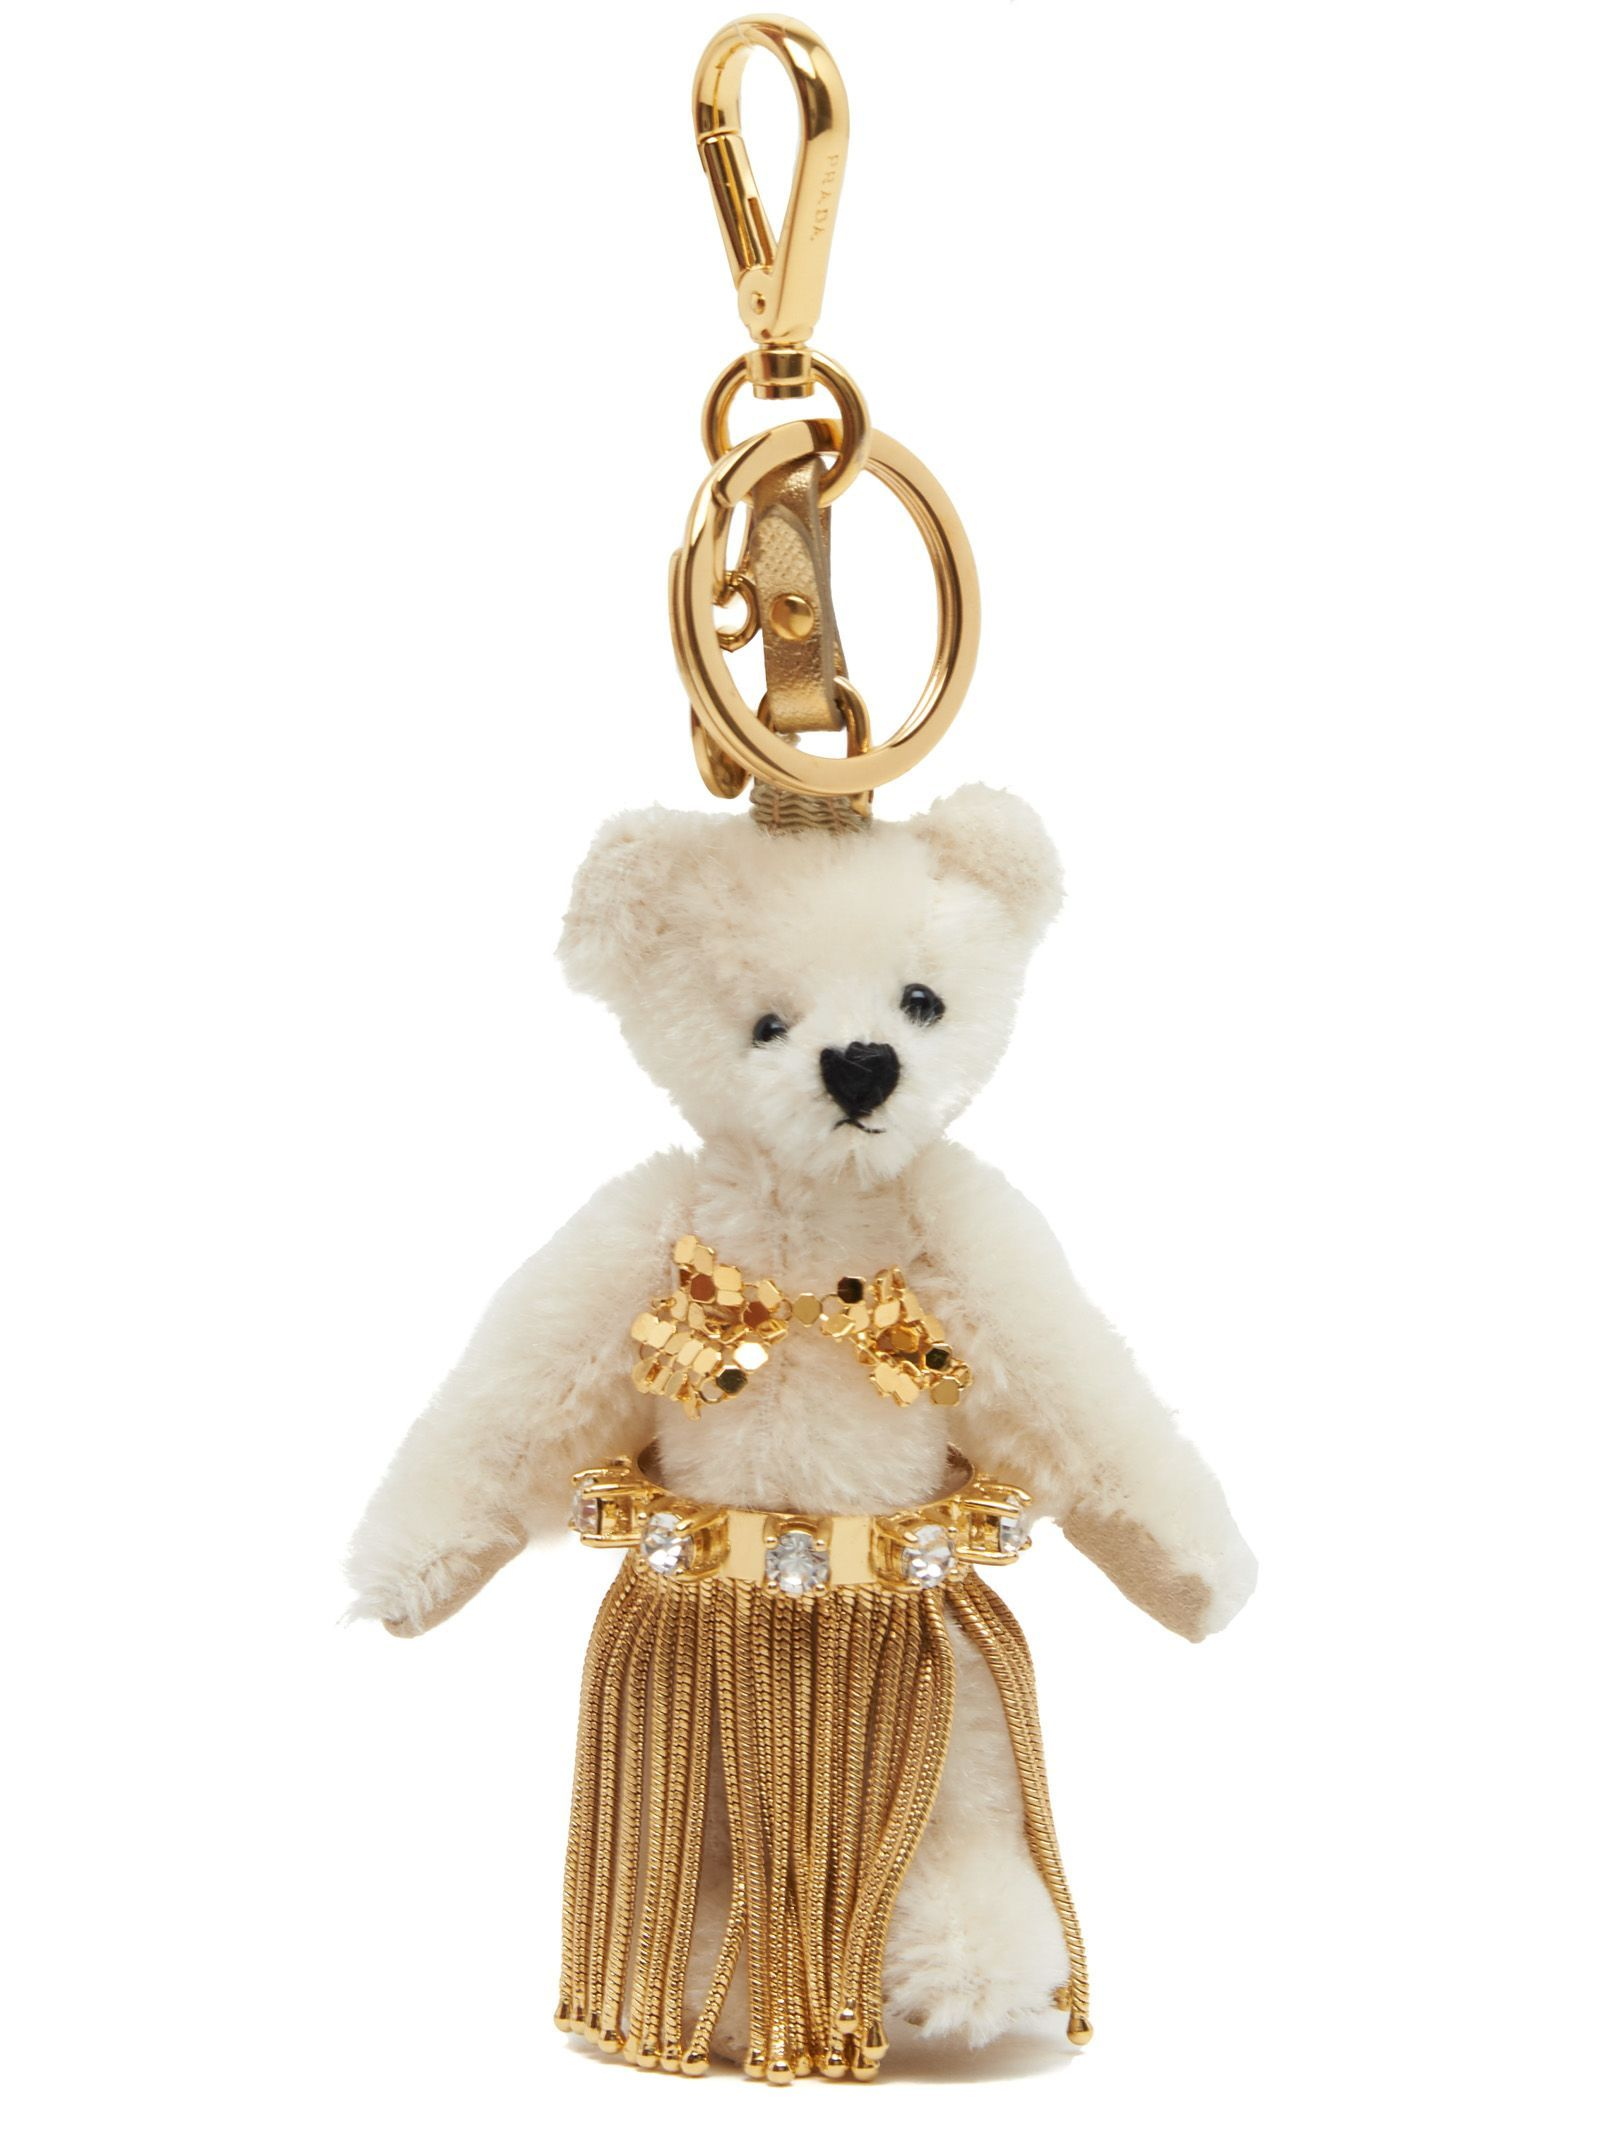 6919e2f8feee Keyring From Prada  Polyester  leia  Teddy Bear Keyring With Gold Details  And Swarowsky